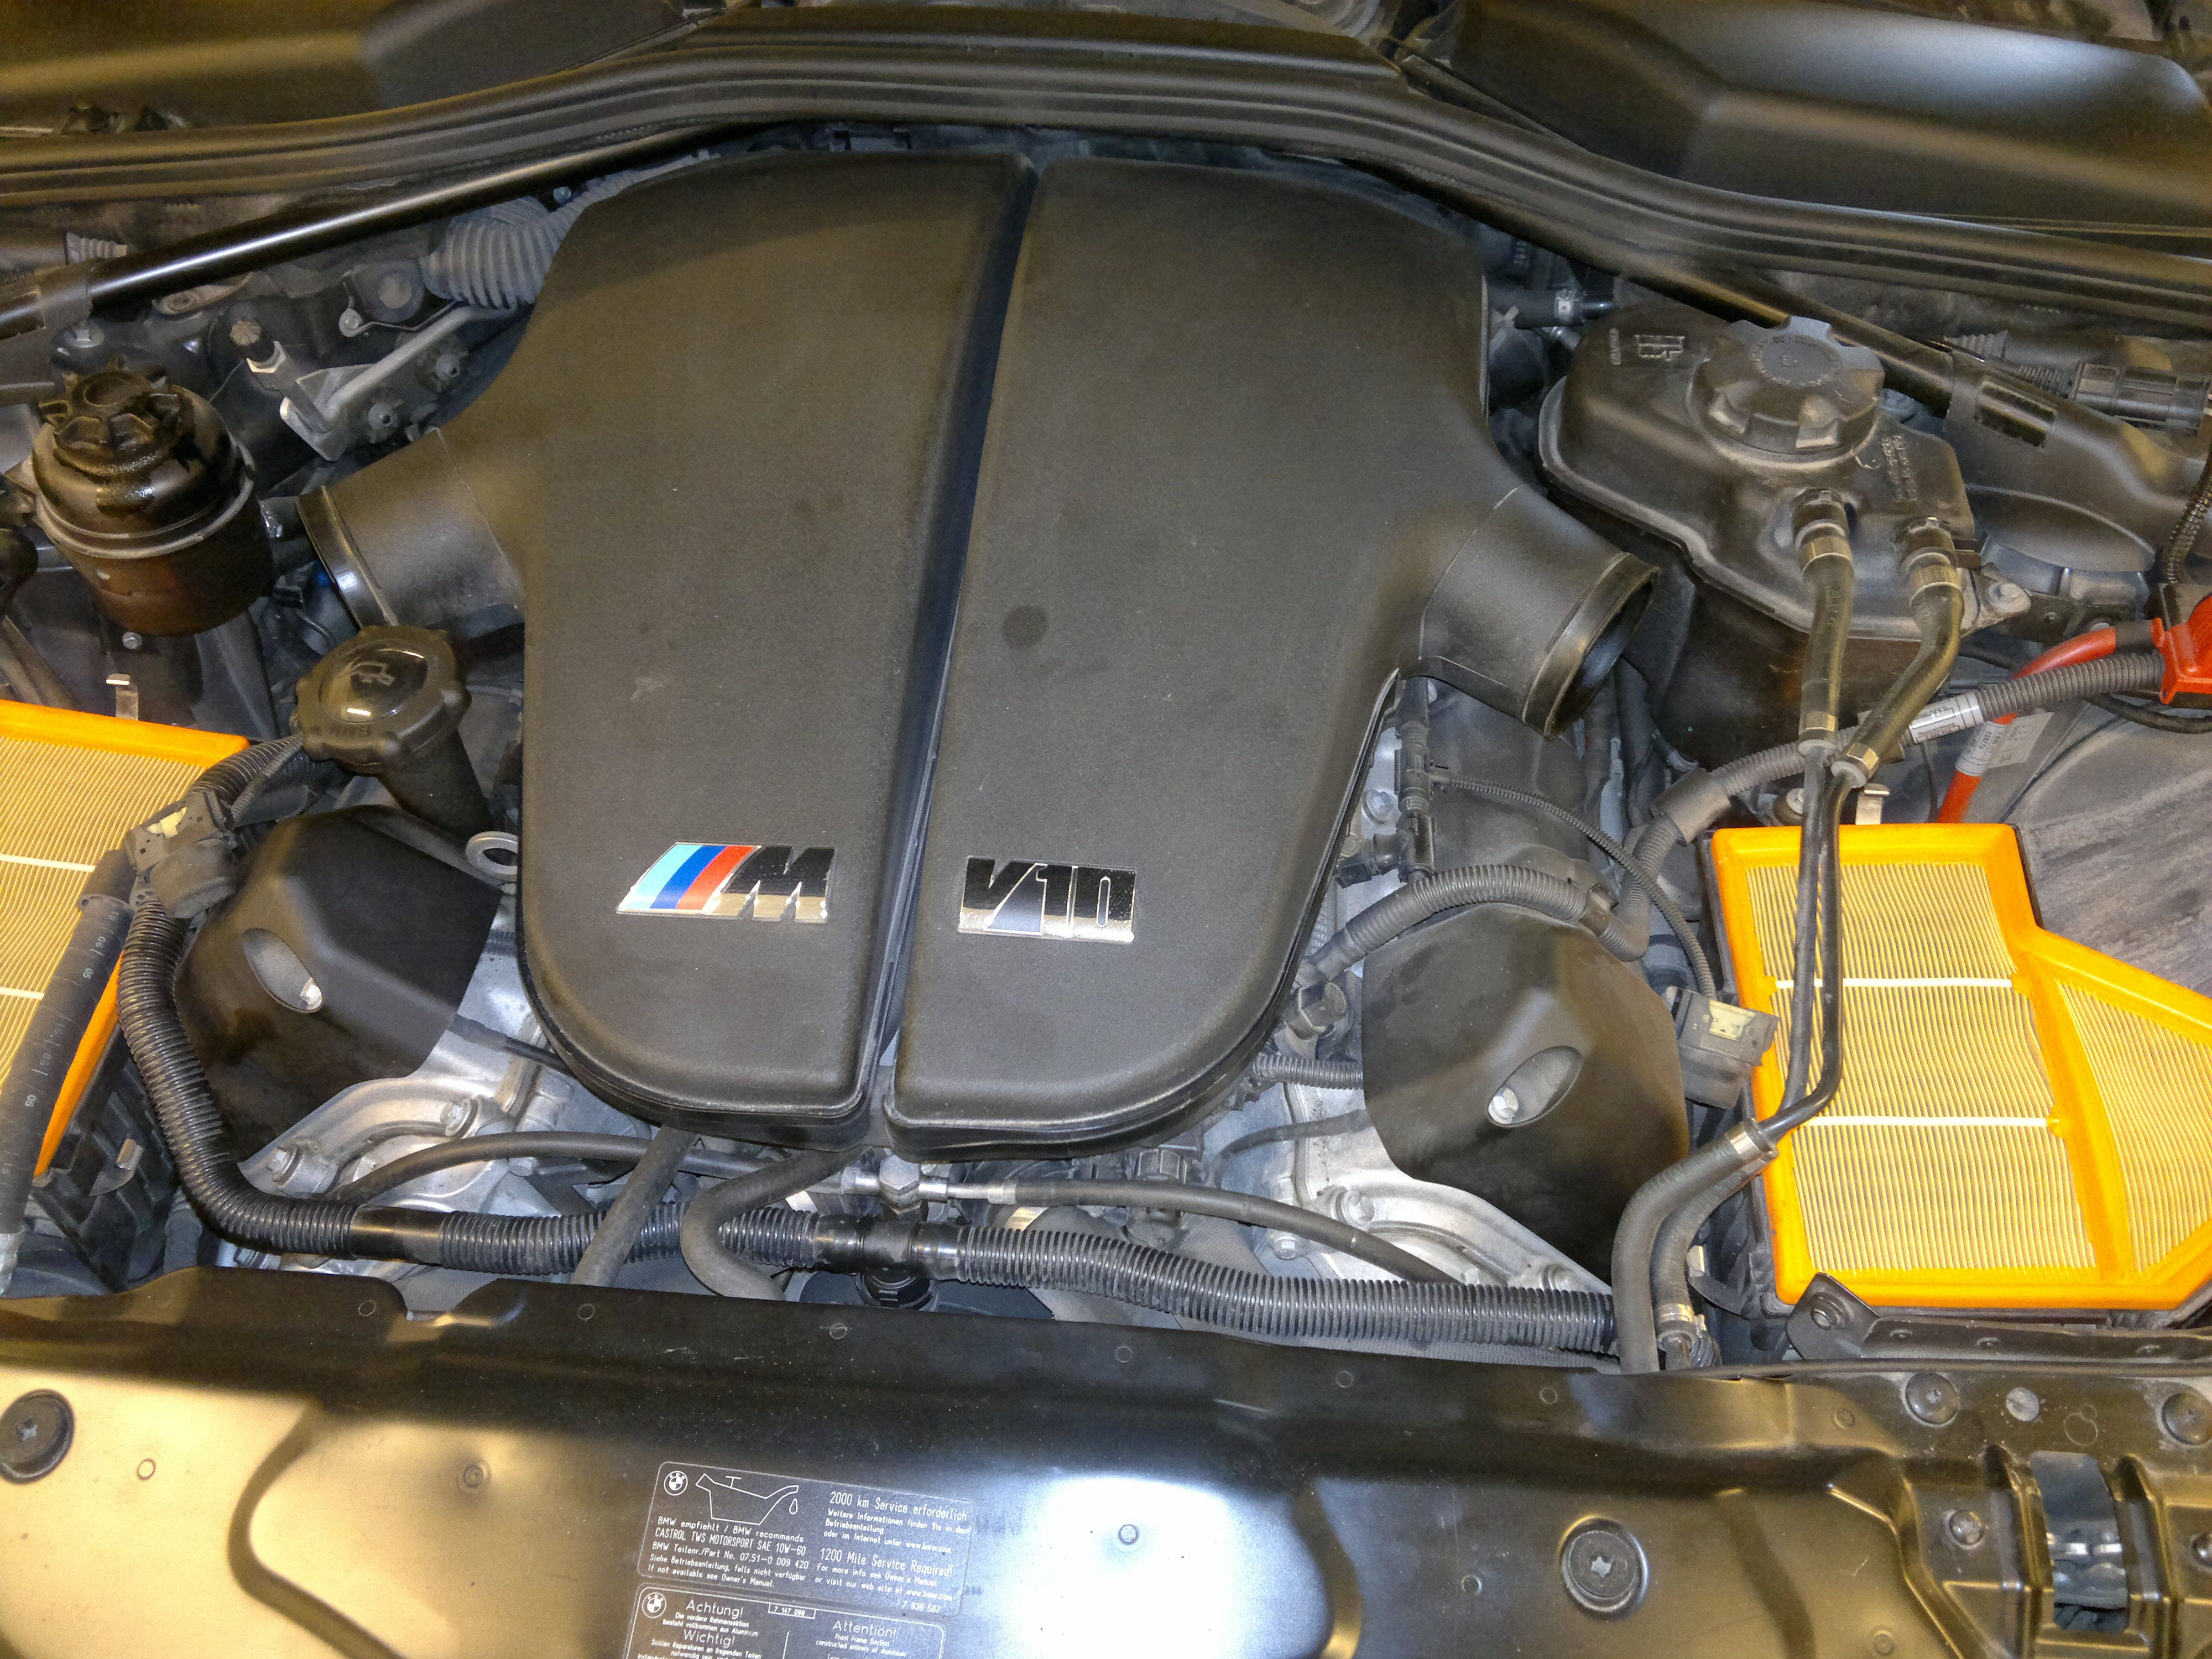 Diy Replacing Throttle Actuator Motor With Pics Bmw M5 Forum And E61 Wiring Harness Repair Kit M6 Forums